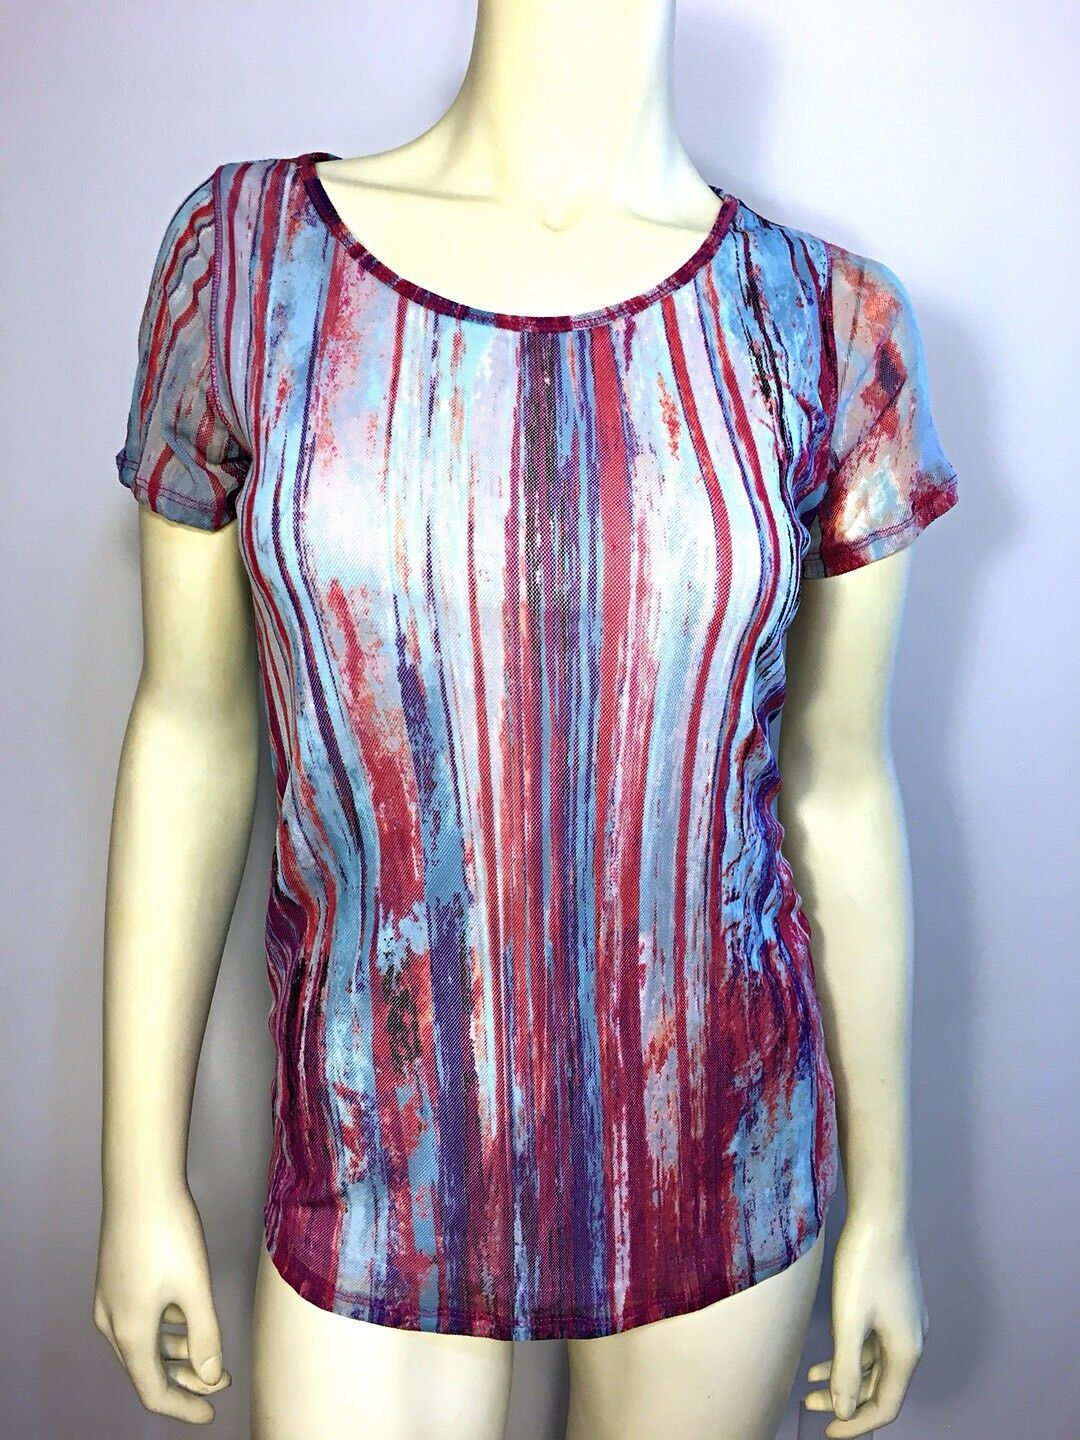 NWT Vivienne Tam Pink bluee Stripe Mesh Watercolor 90's Top Blouse Shirt Med